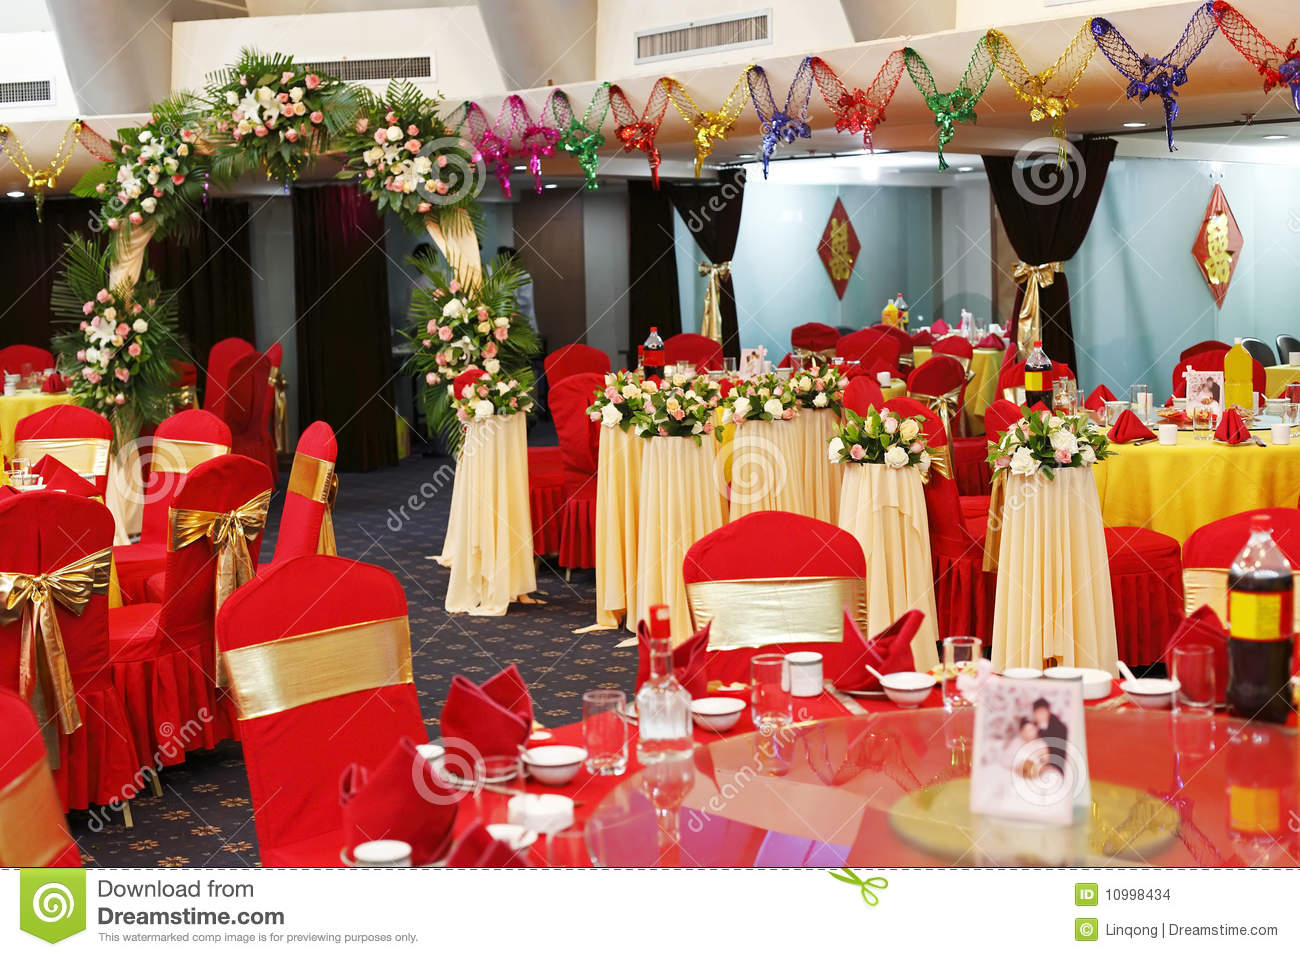 Decoration in wedding banquet stock photo image 10998434 for Asian wedding decoration